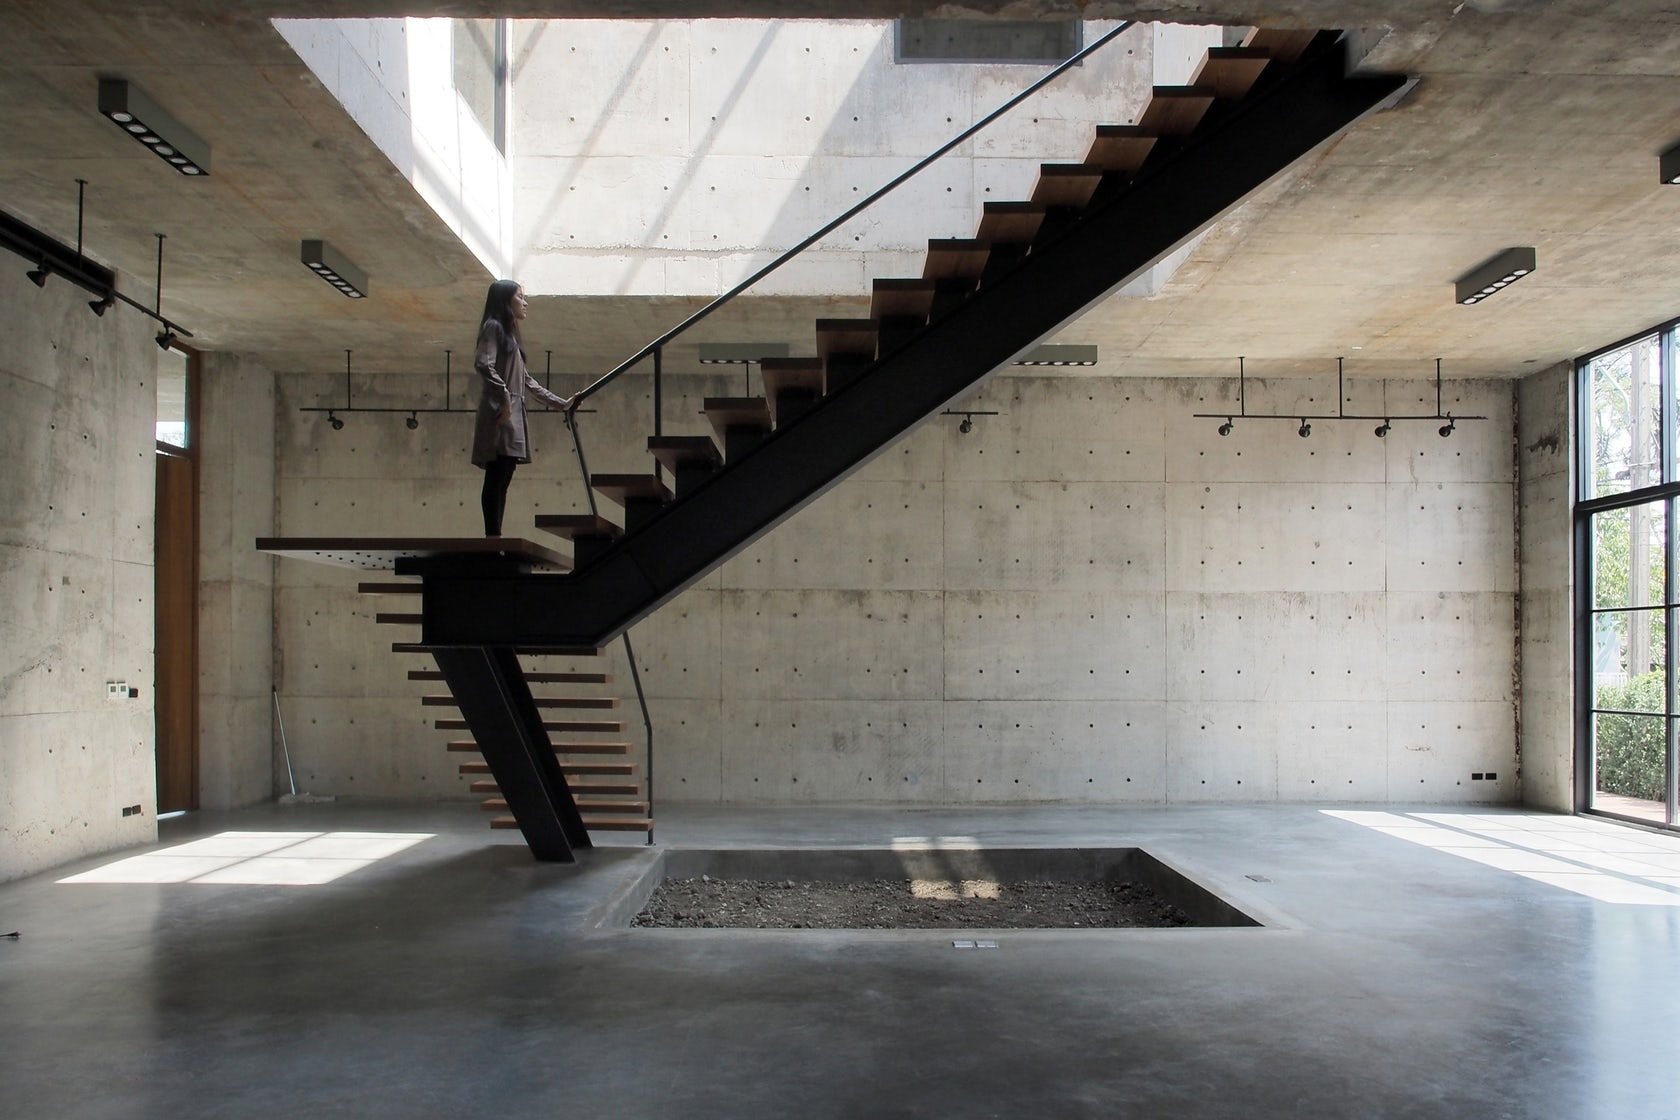 Solid Concrete Studio + Gallery By ASWA Features A Mono Stringer  Cantilevered Staircase With A Single Landing And Metal Railing. Set In  Bangkok, This Type ...